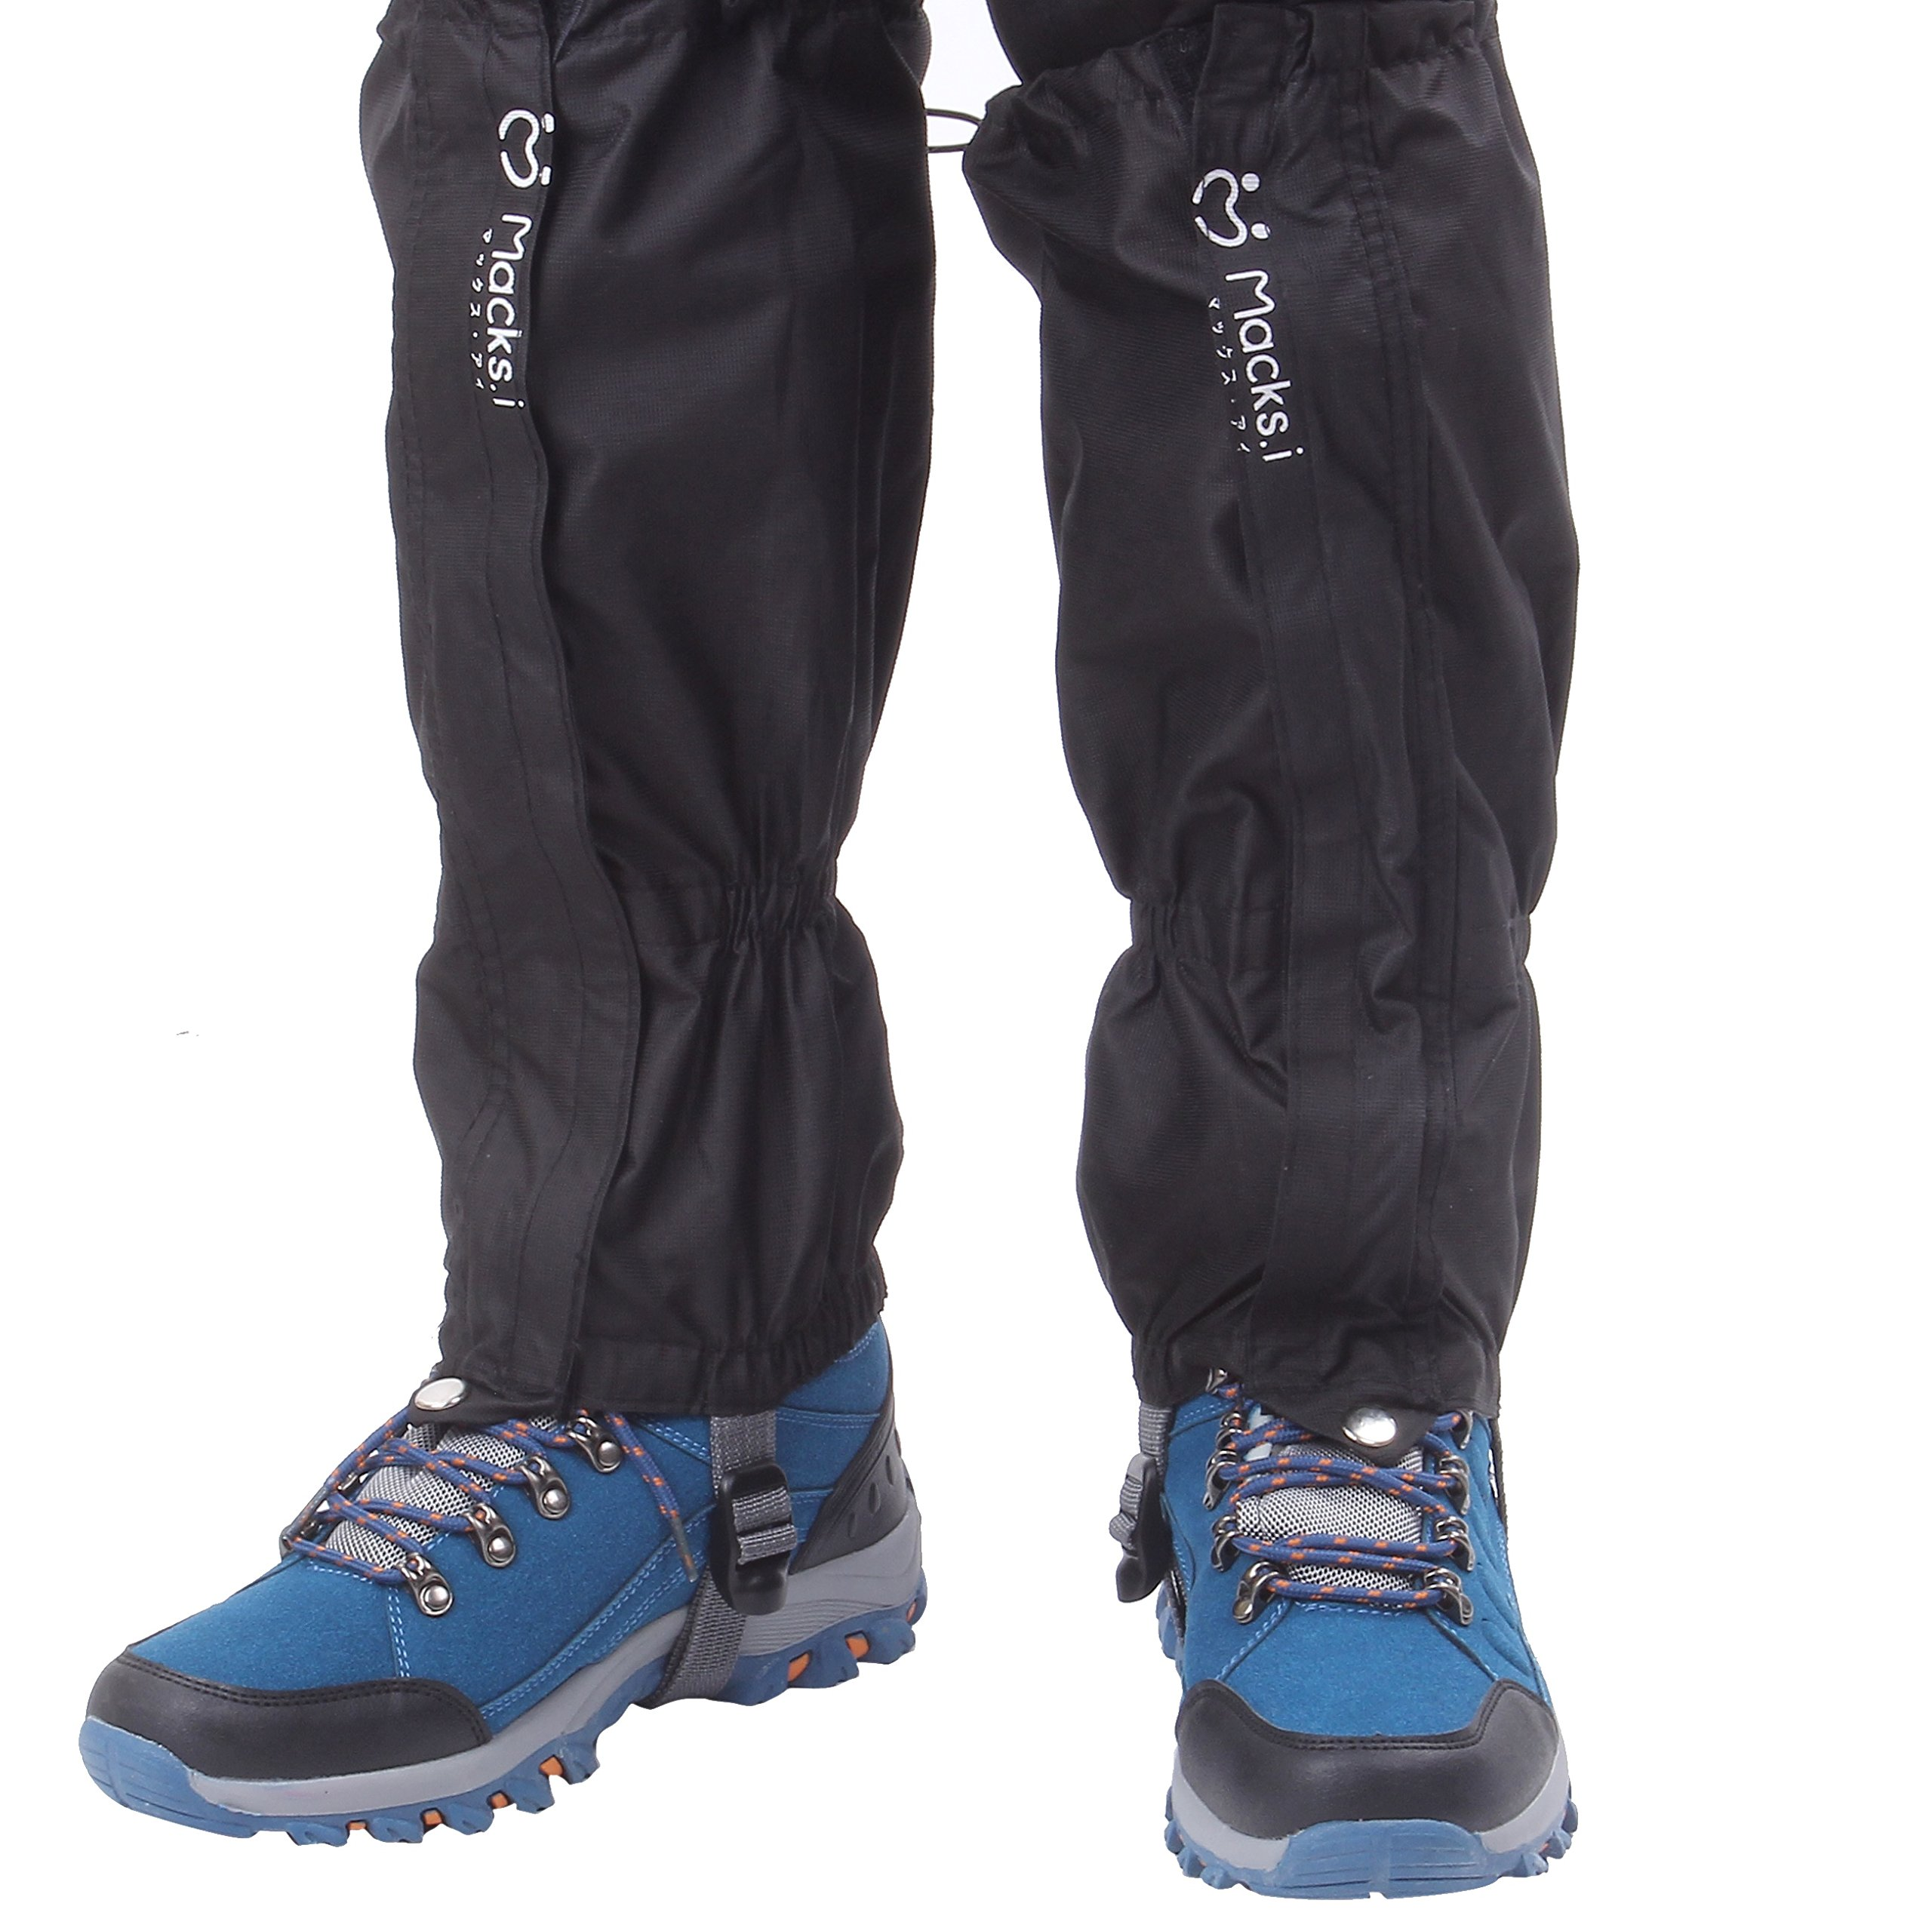 Macks.i Outdoor Unisex Waterproof Camping Hiking Gaiters High Leg Cover 1pair with a Free Shoe Bag by Macks.i